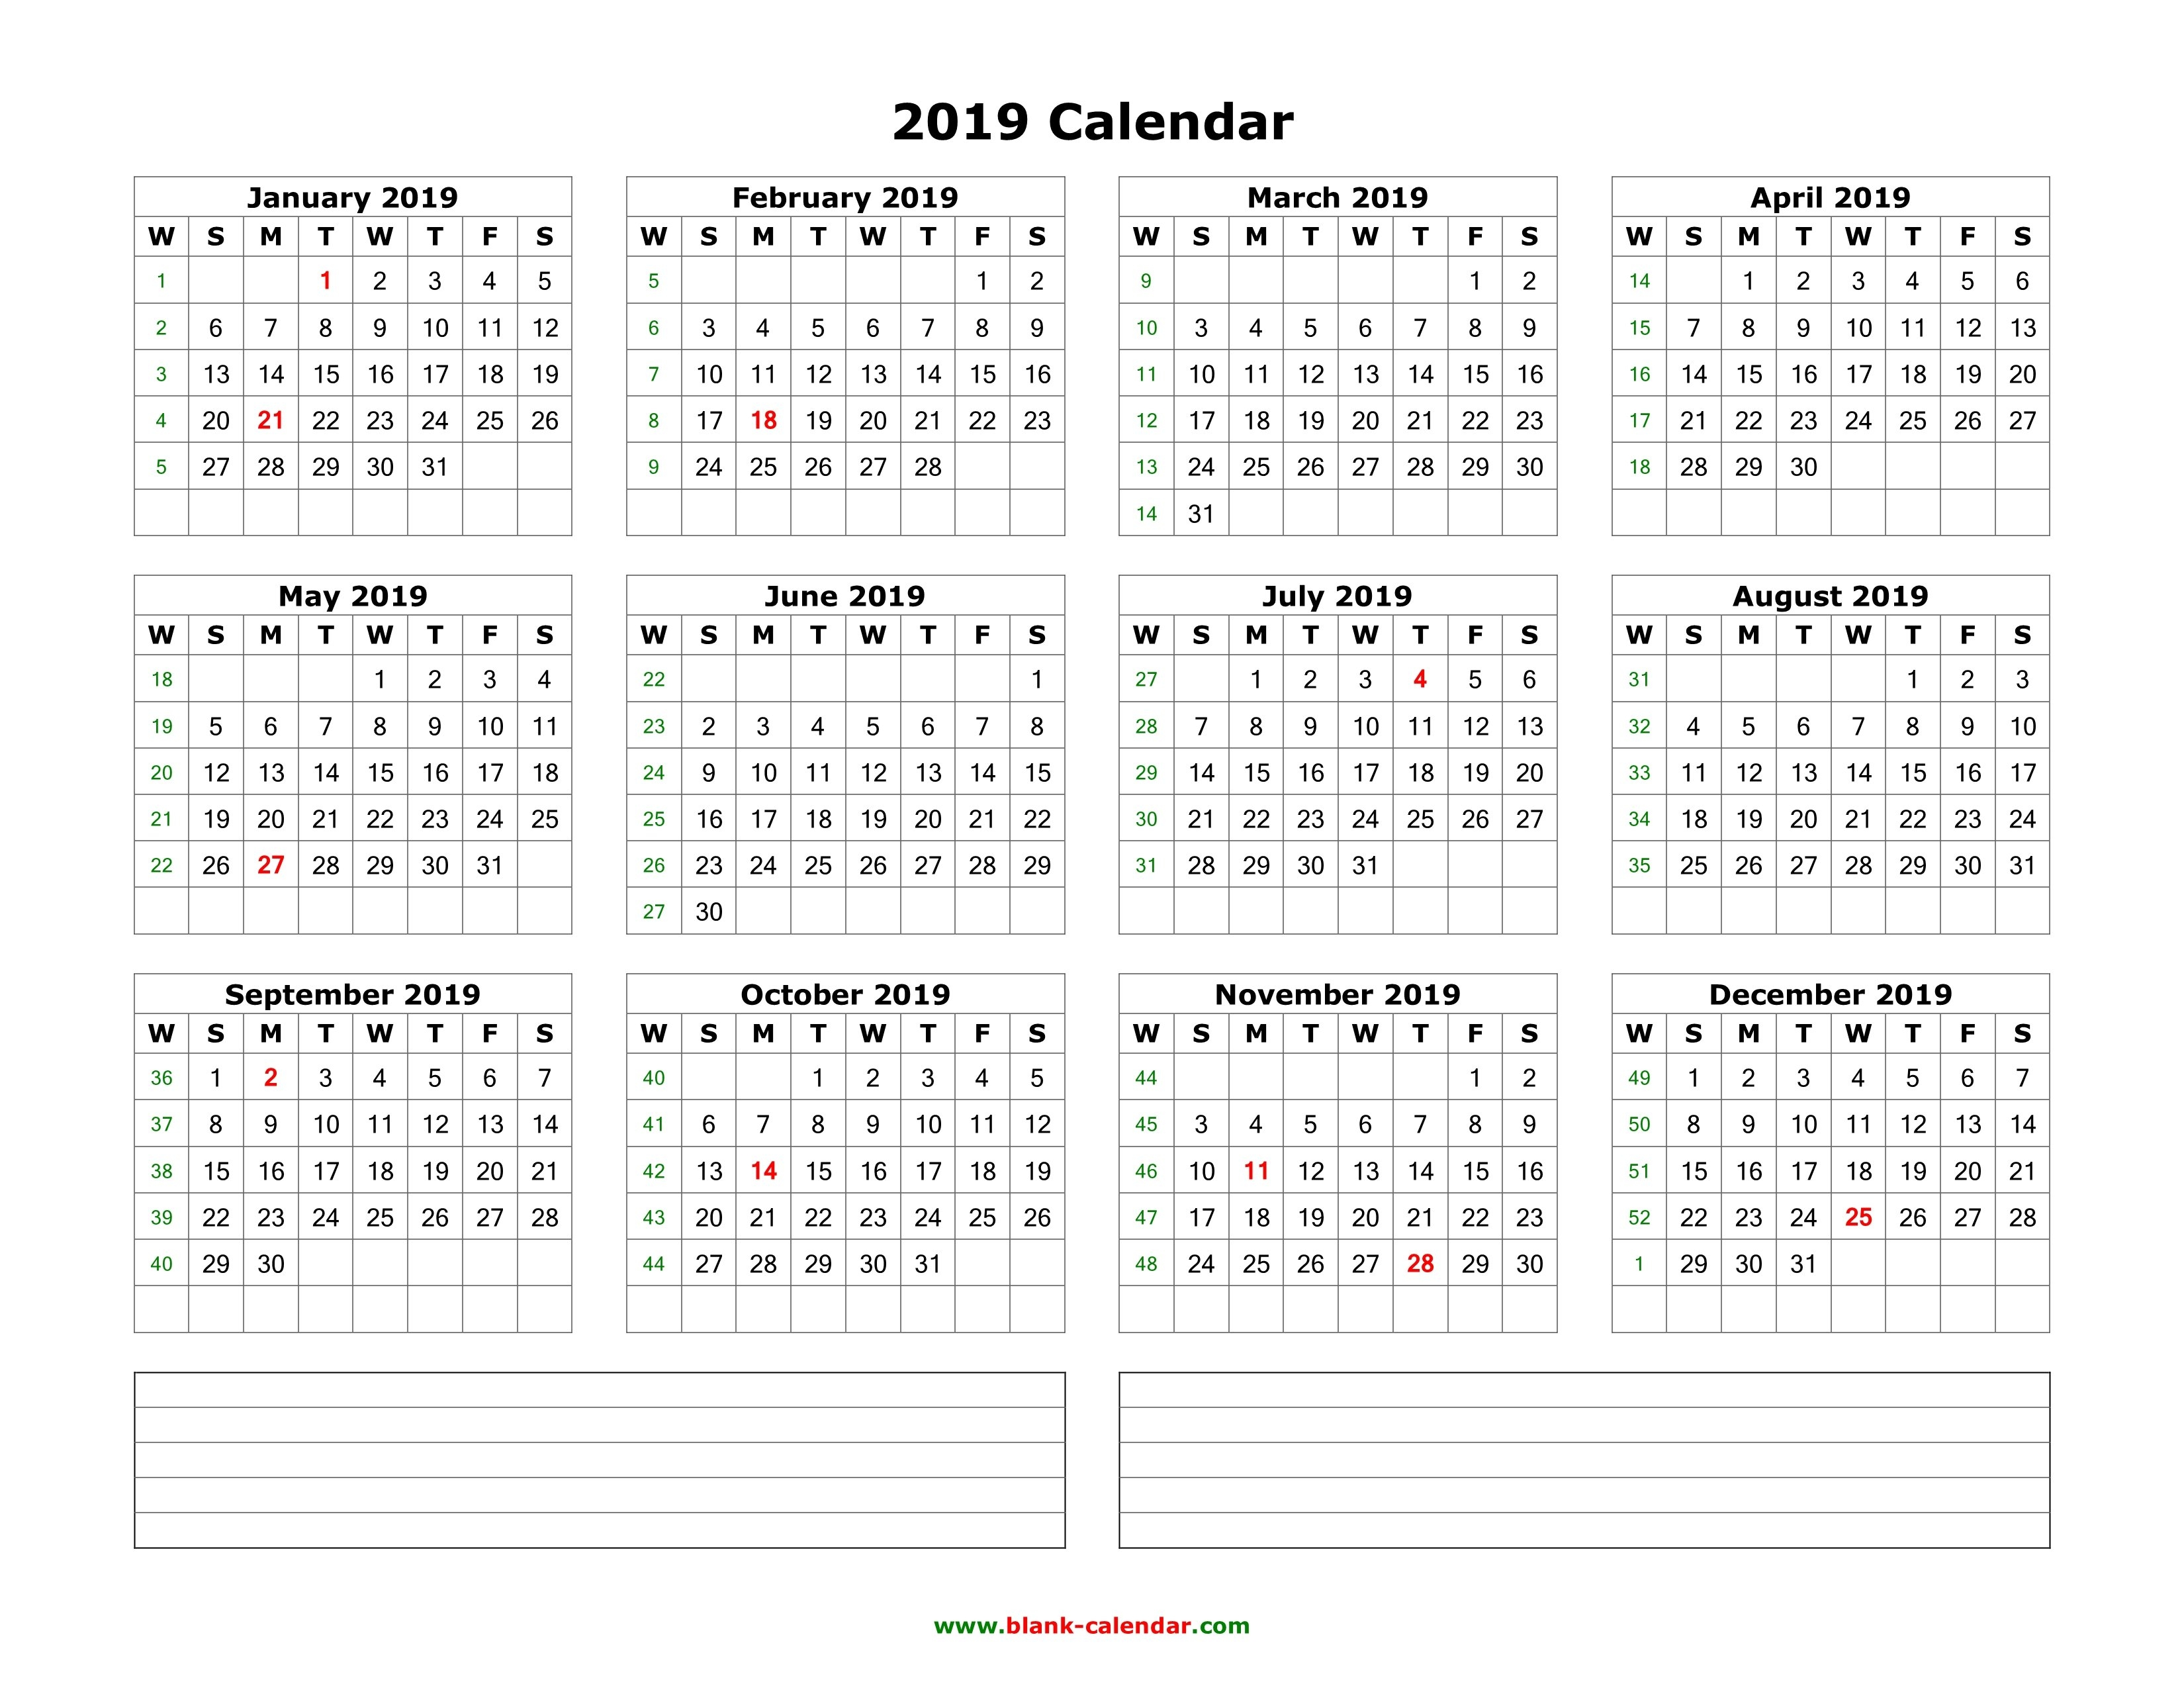 Download Blank Calendar 2019 With Space For Notes (12 Months On One Calendar 2019 By Month